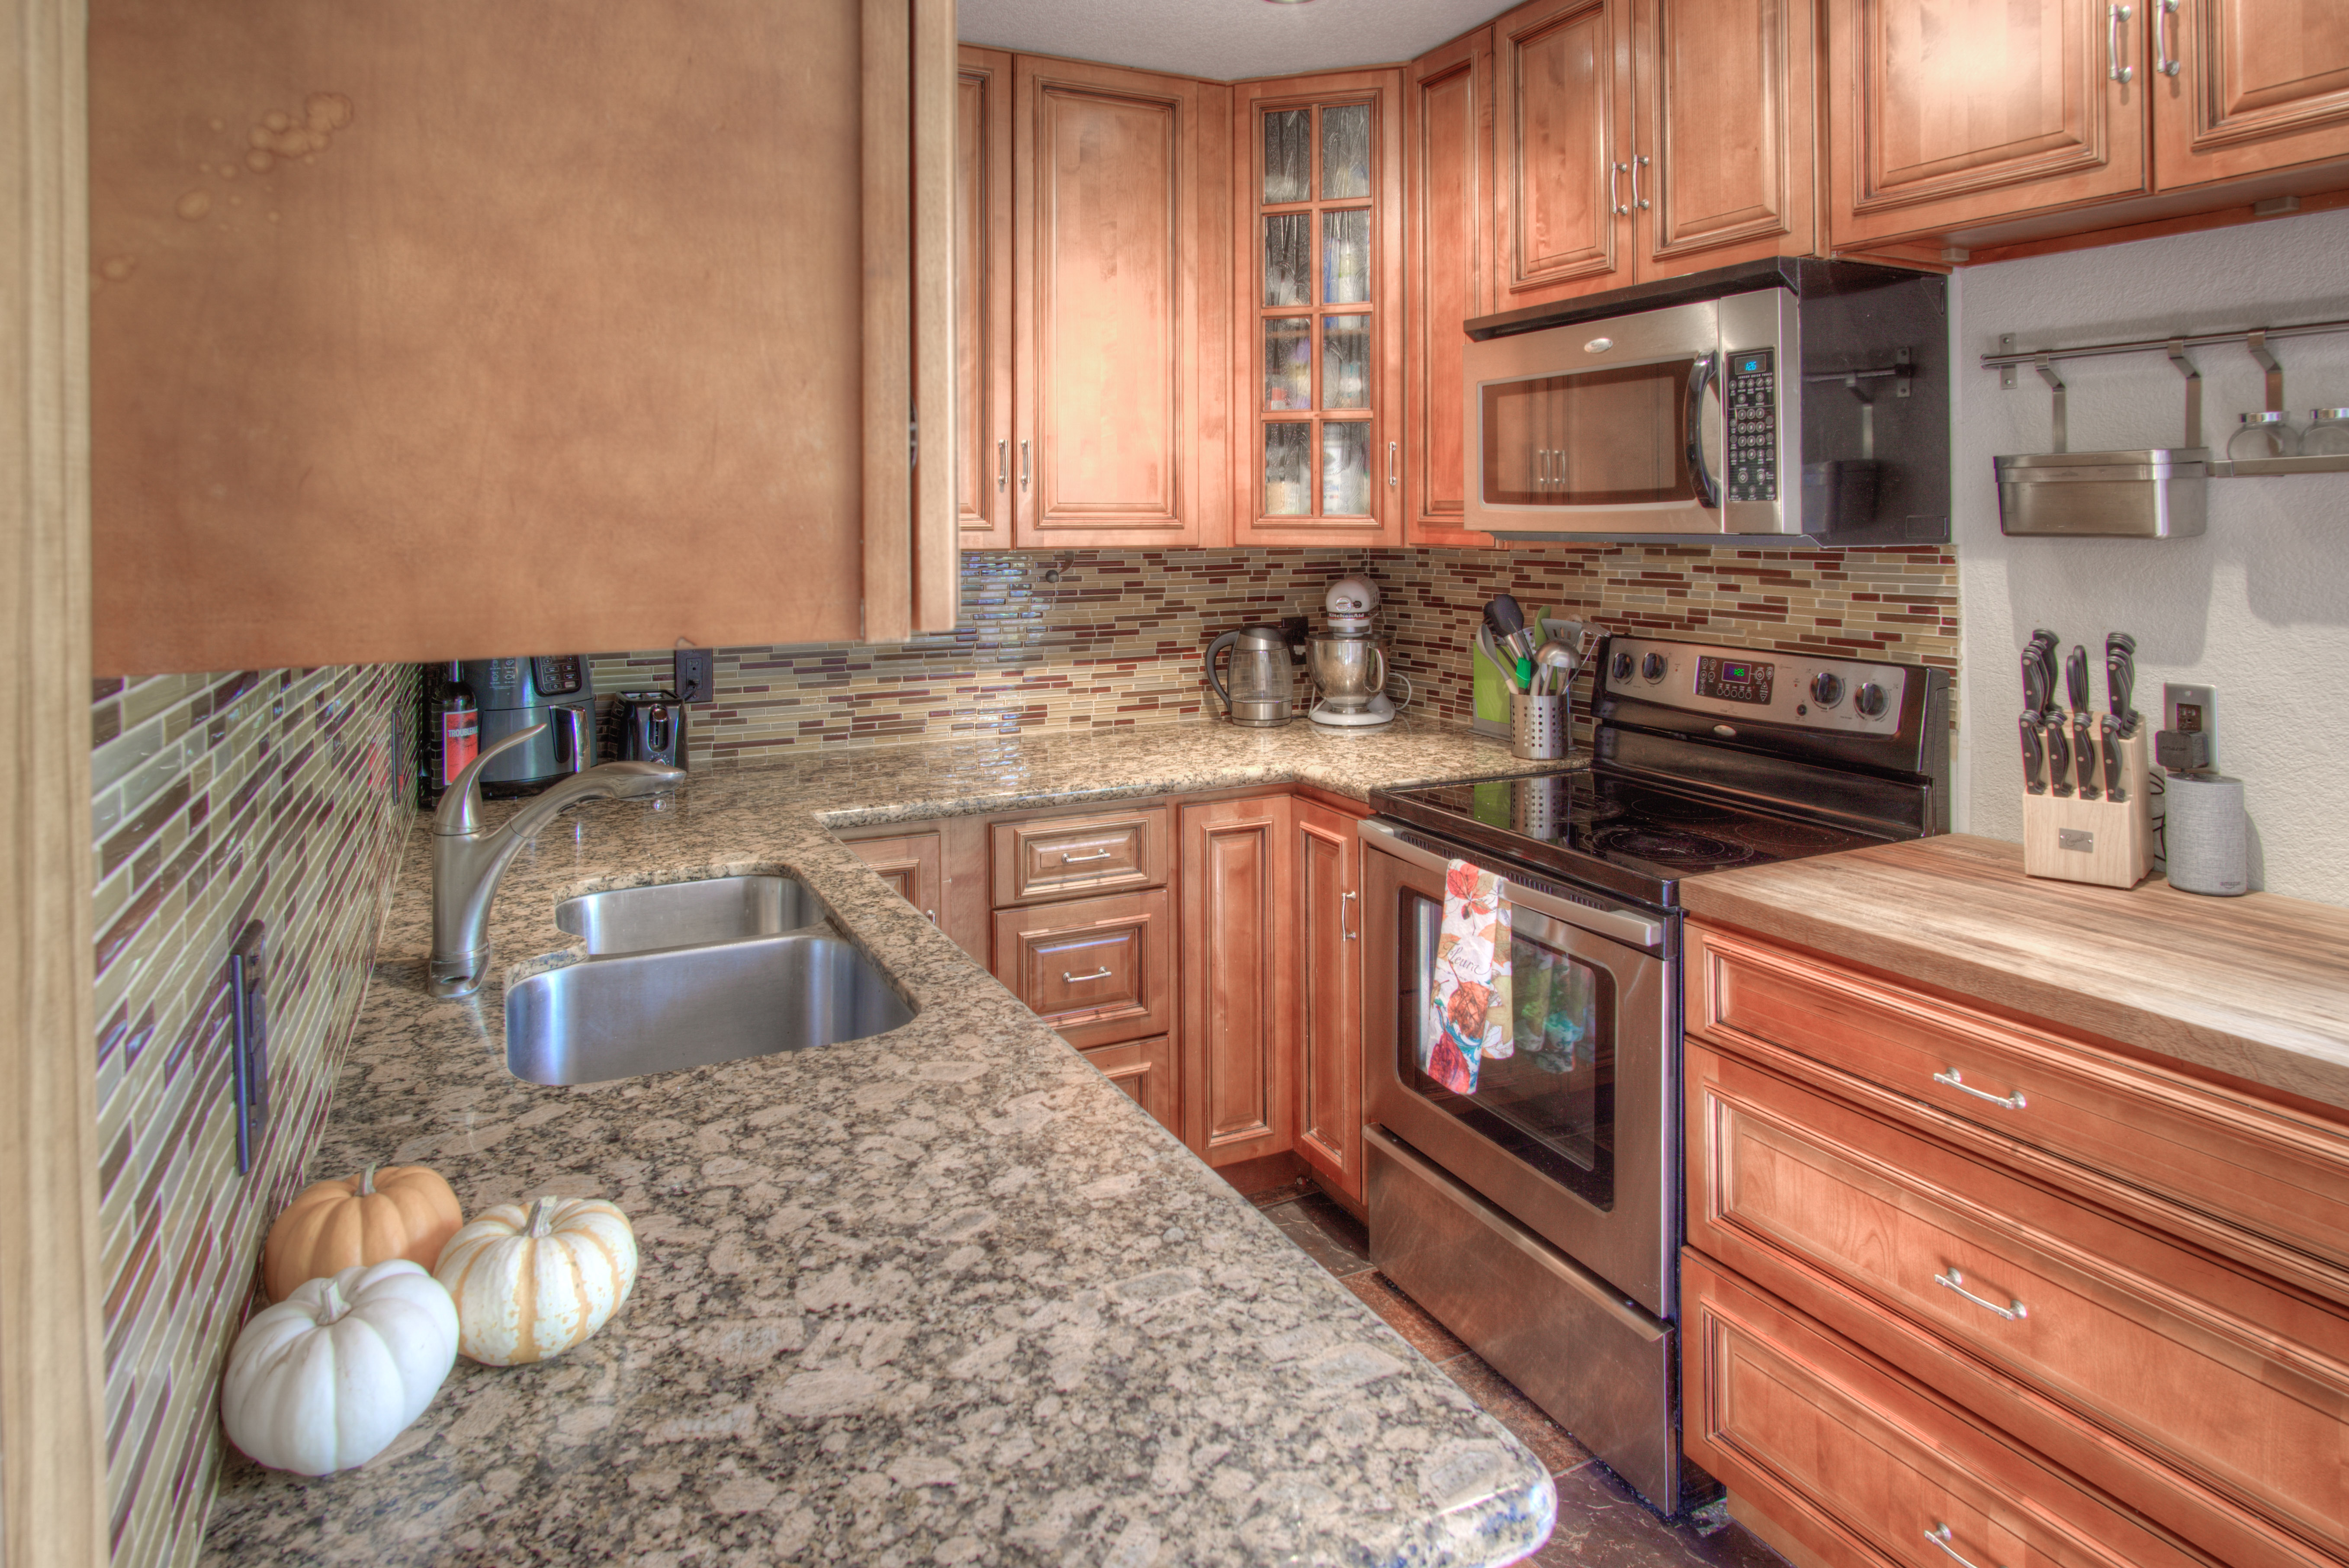 Slab granite and newer cabinets